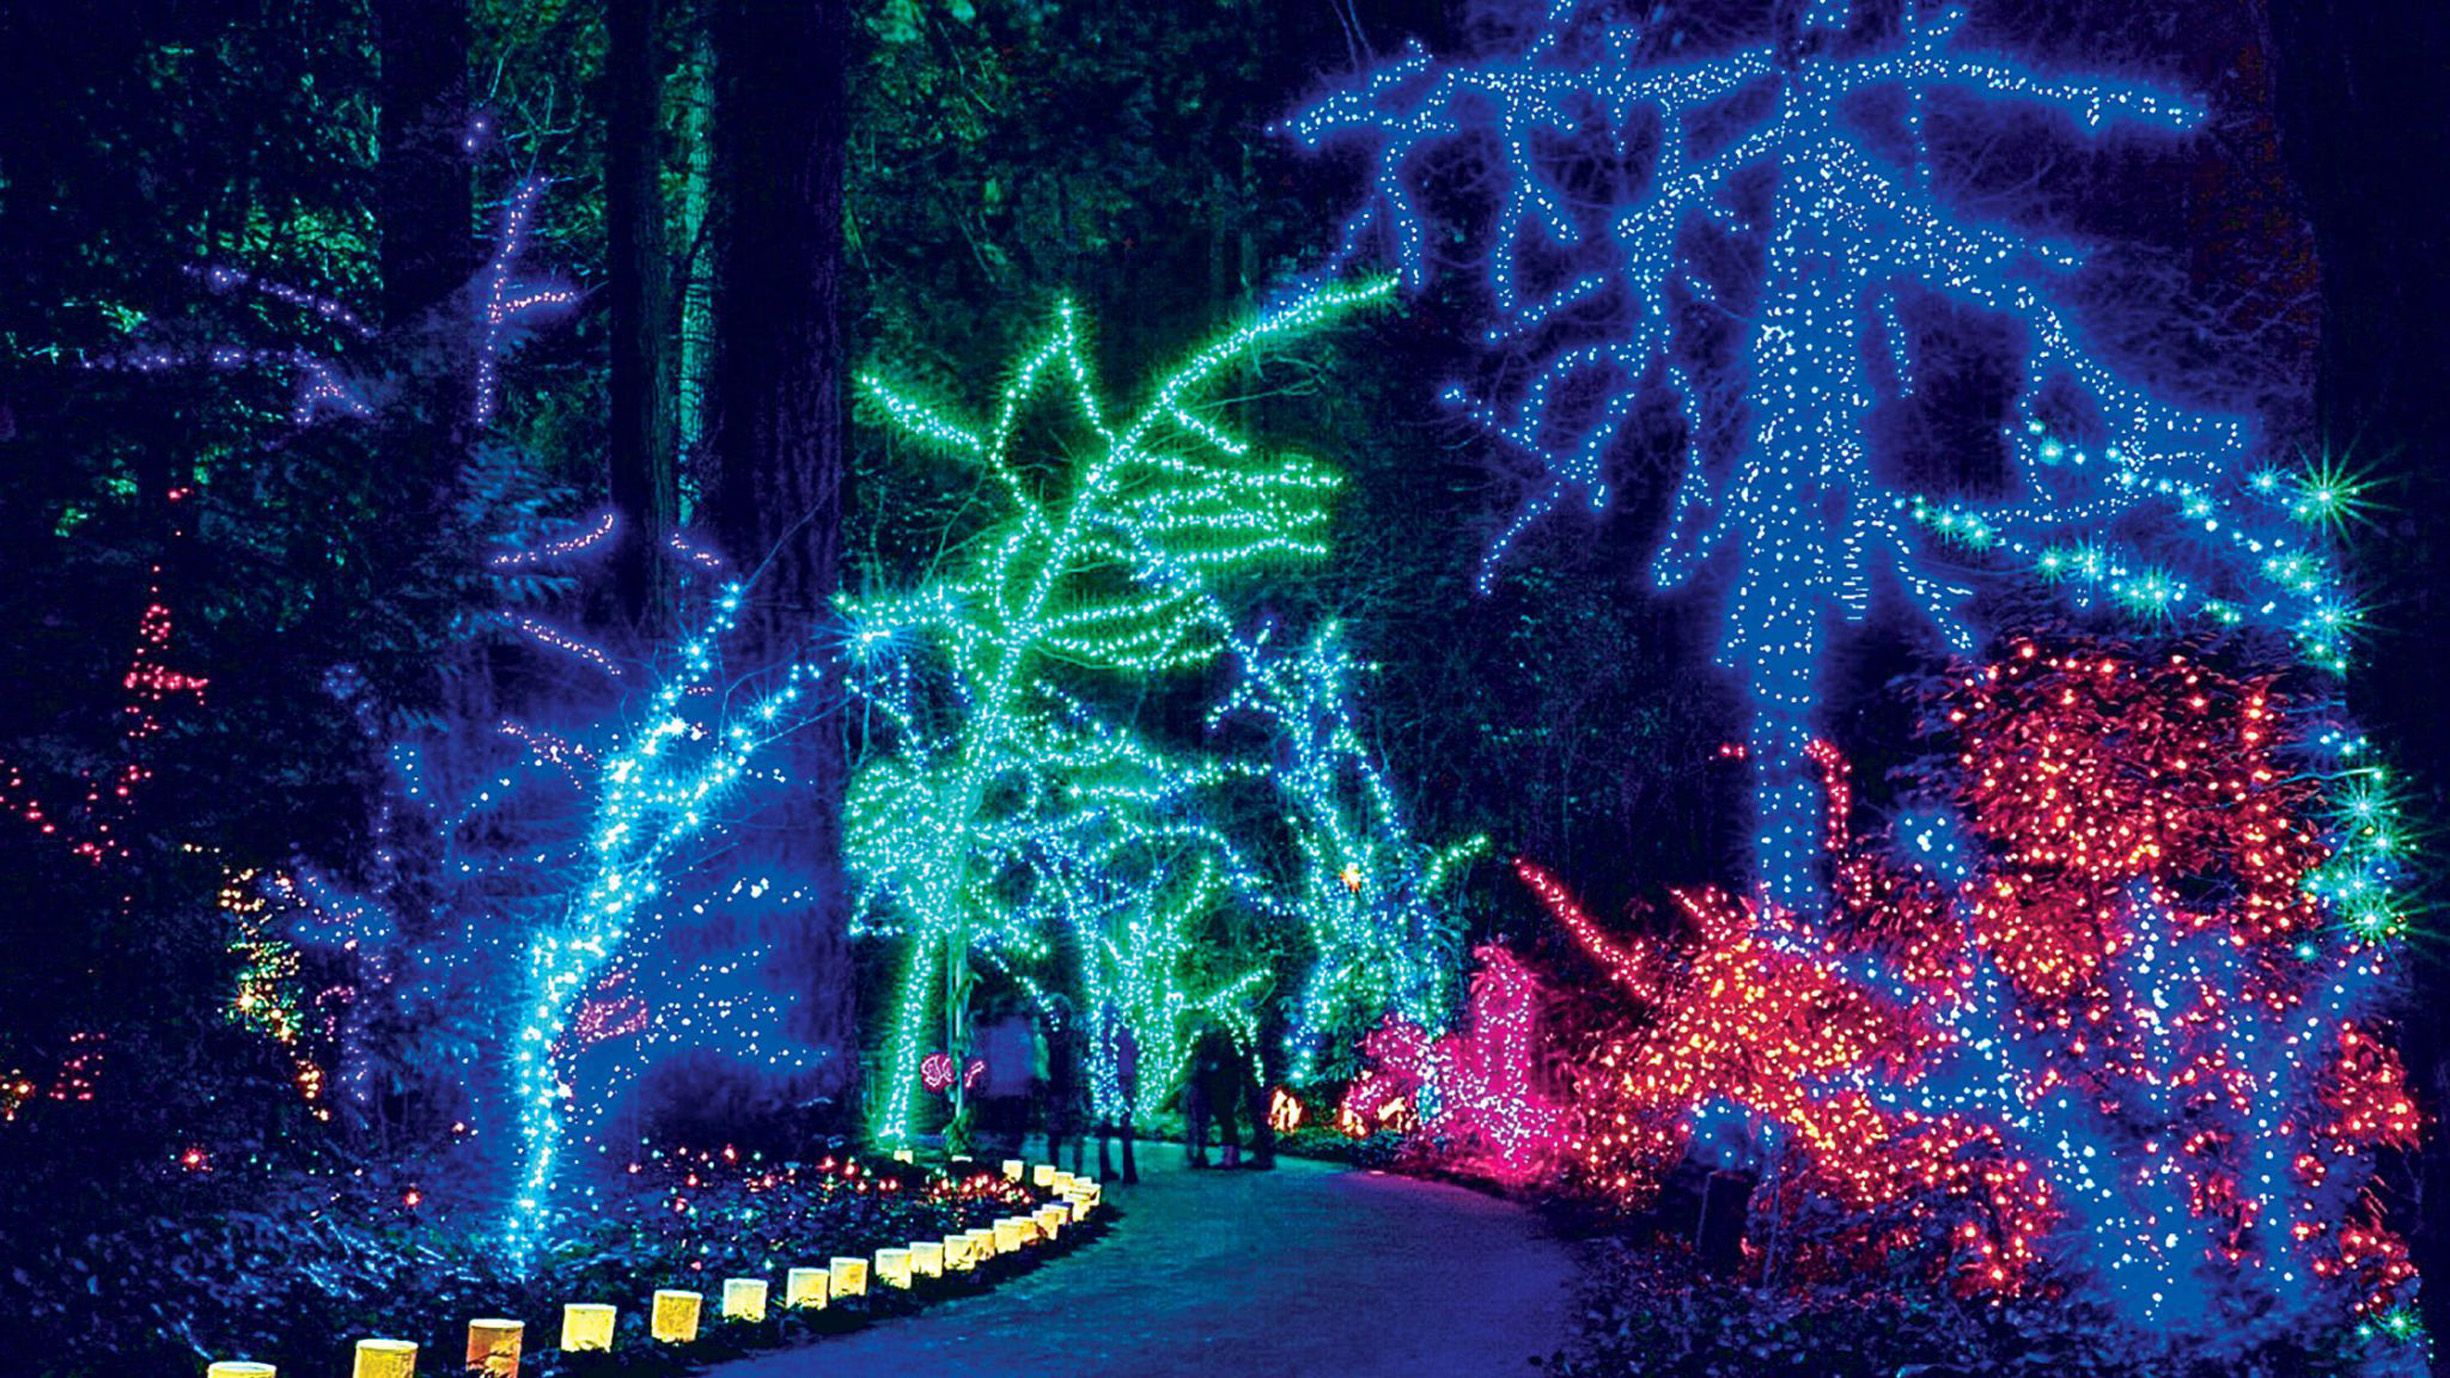 Best Christmas Lights Near Me.25 Bbest Christmas Light Displays In America Holiday Light